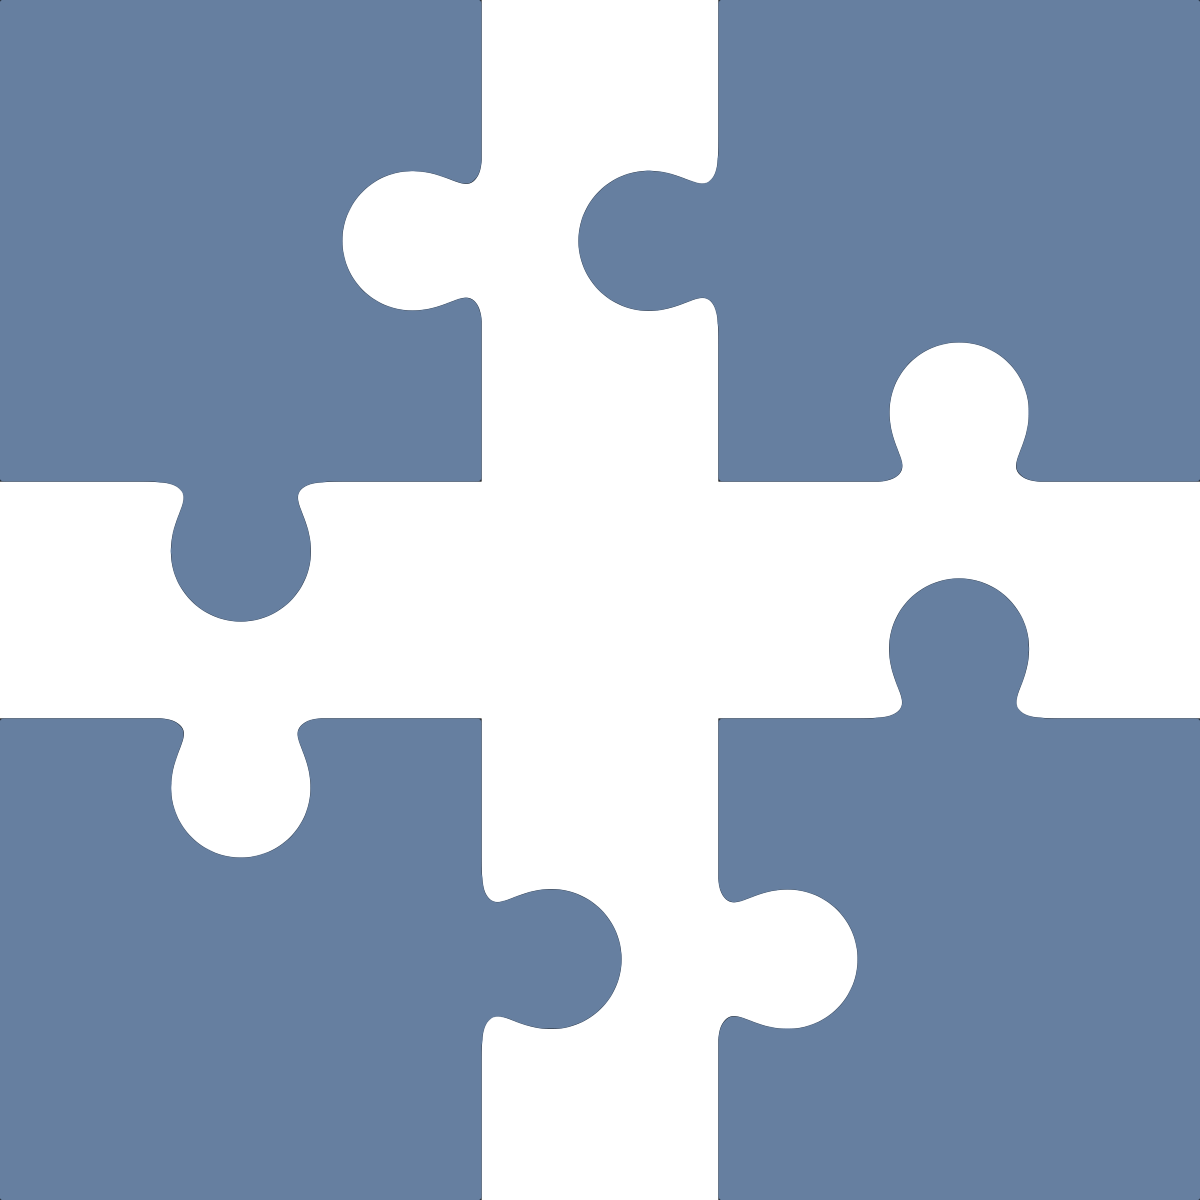 Icon of four puzzle pieces that fit together